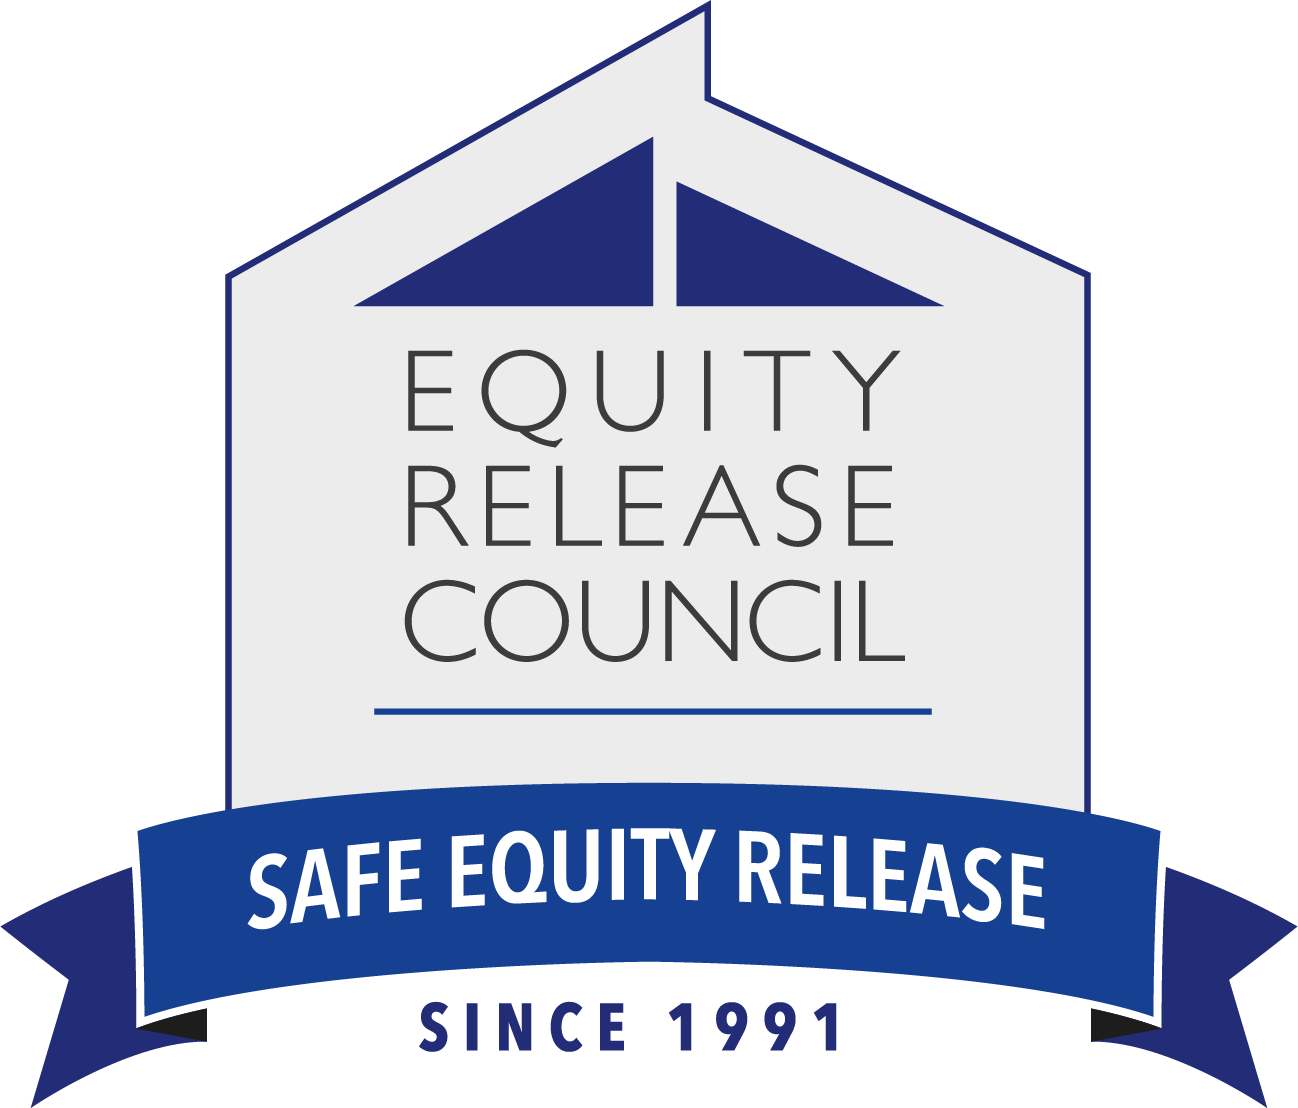 StepChange joins the Equity Release Council